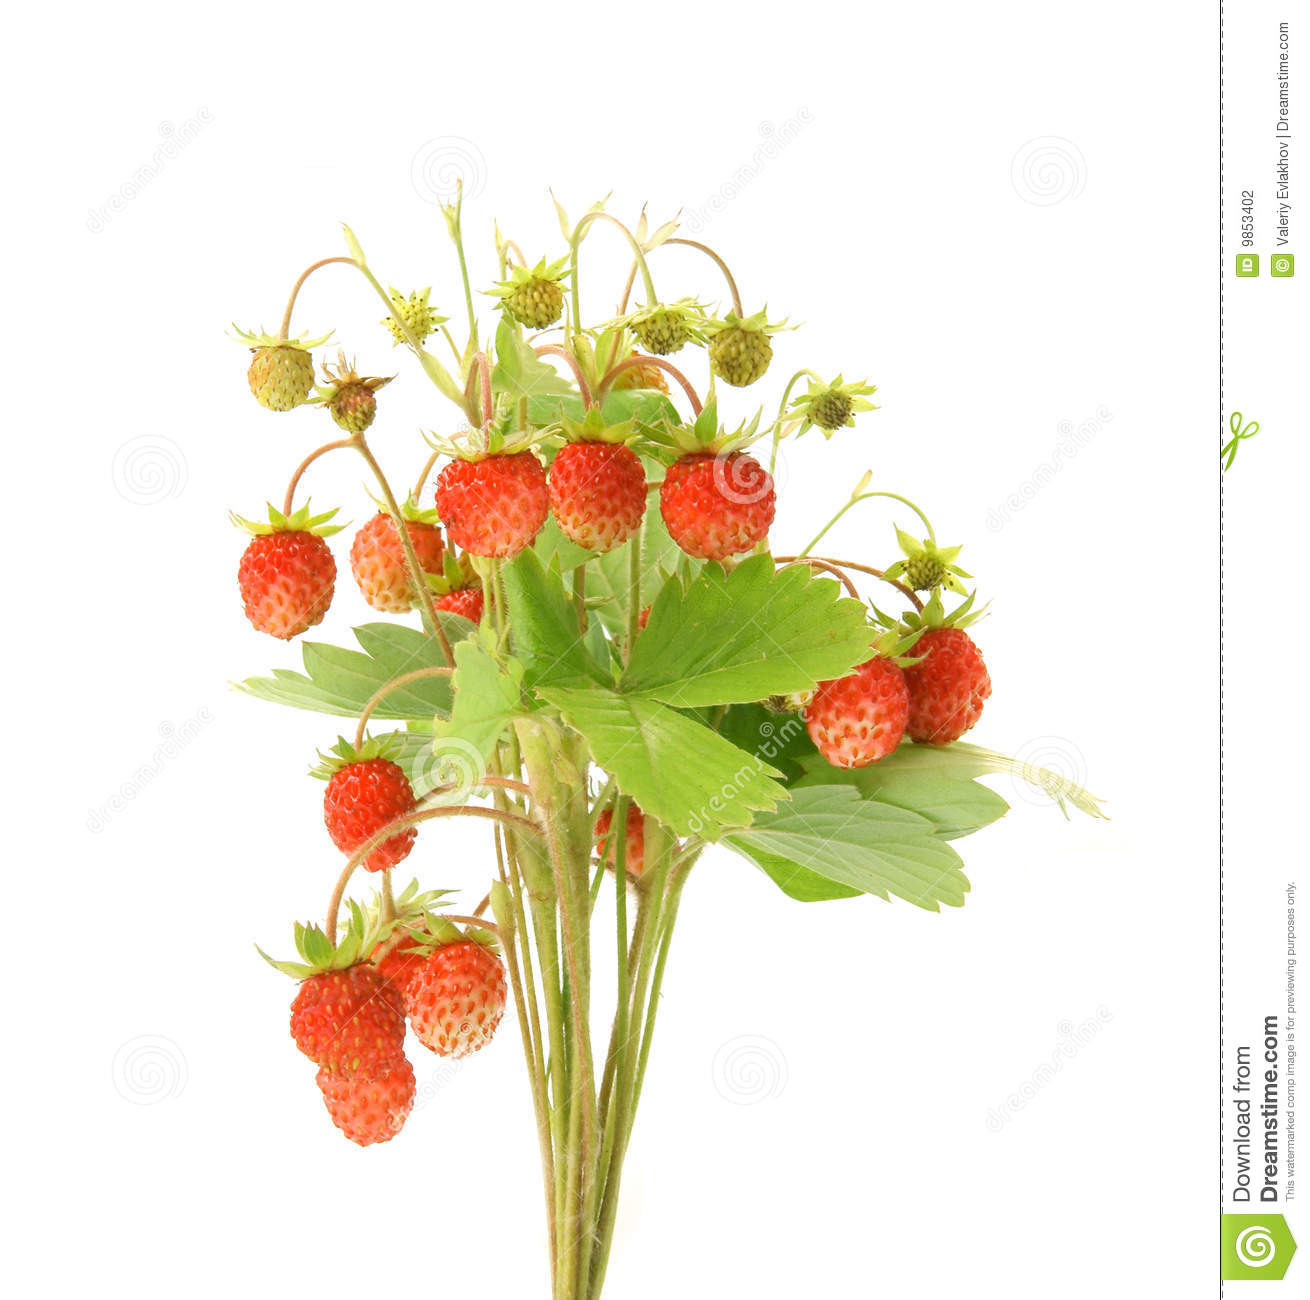 Wild Strawberry Plant Stock Photo.